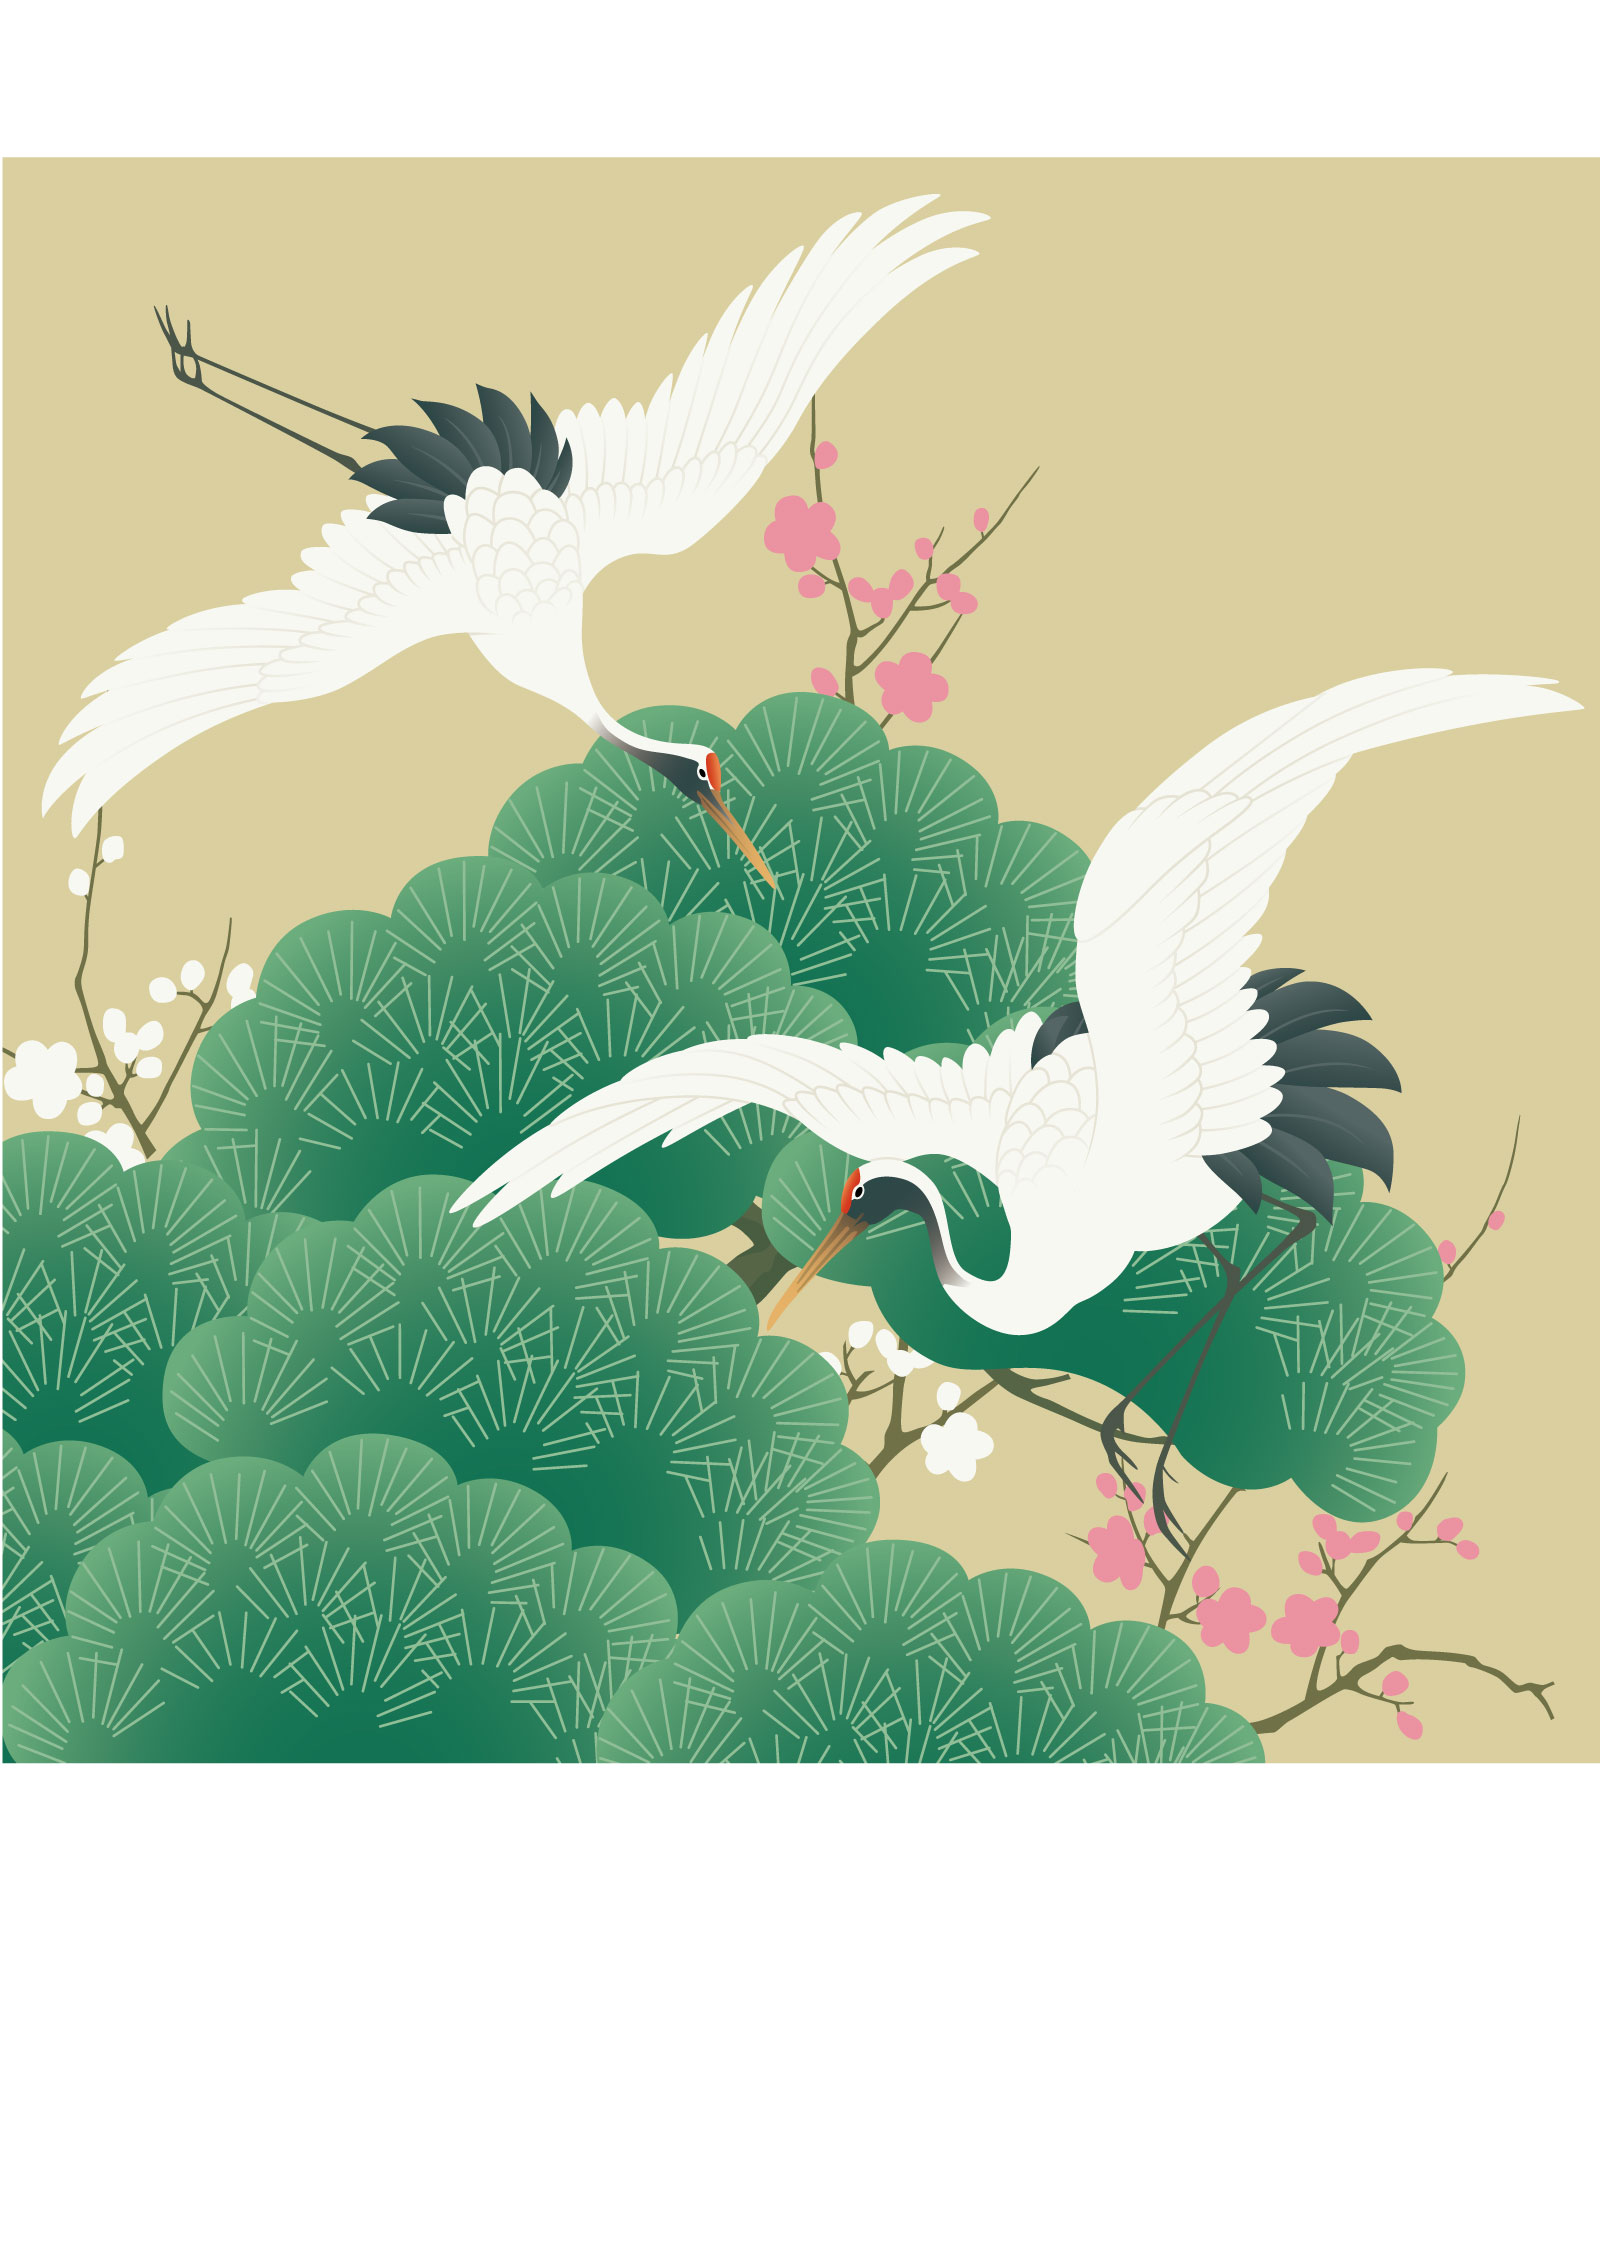 The traditional Chinese painting style cranes -Illustrations Vectors AI Free Download